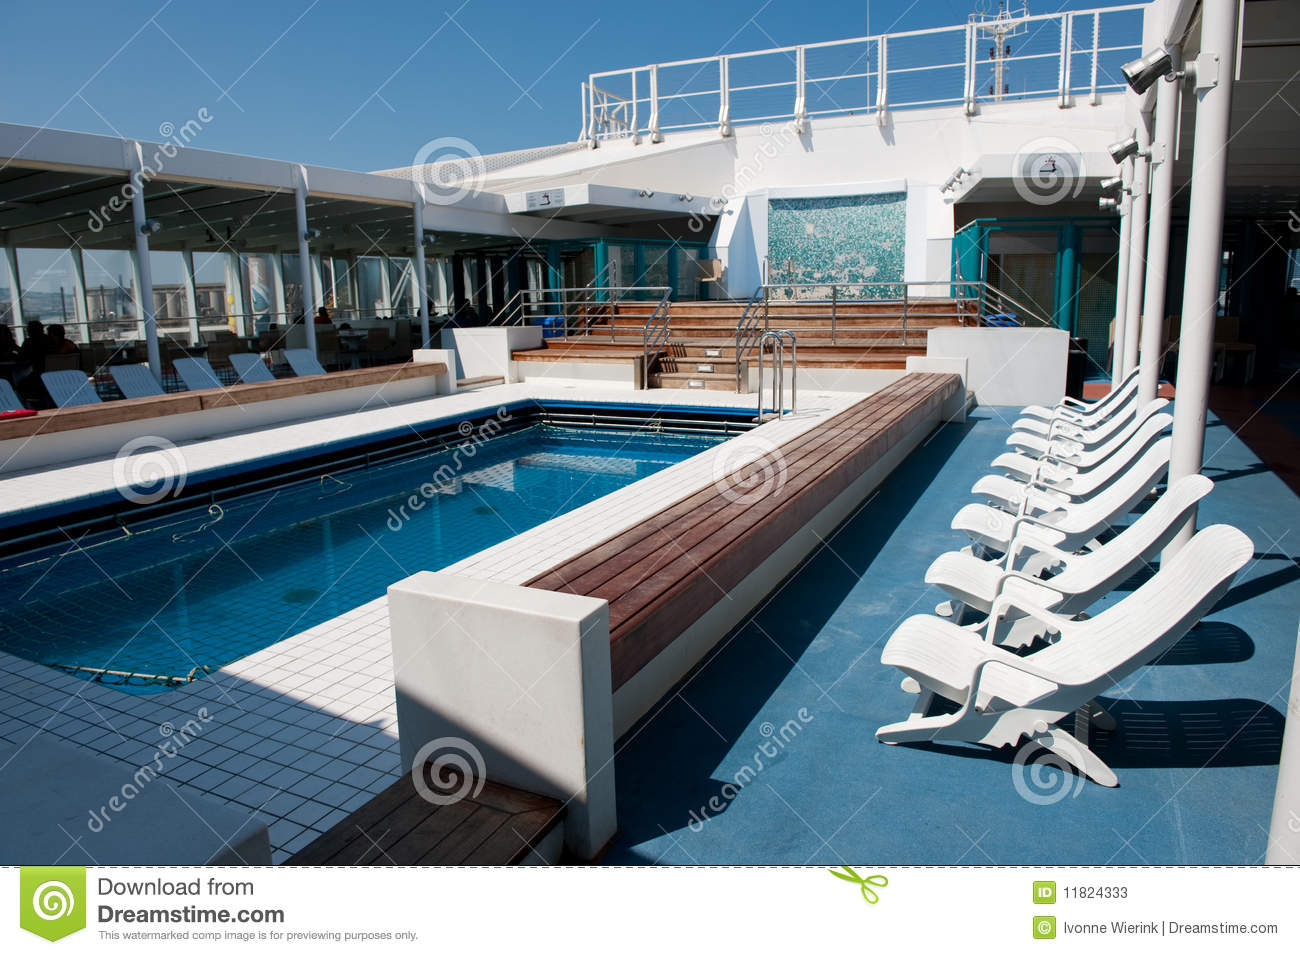 Cruise ship swimming pool stock image image of vacation 11824333 for River cruise ships with swimming pool